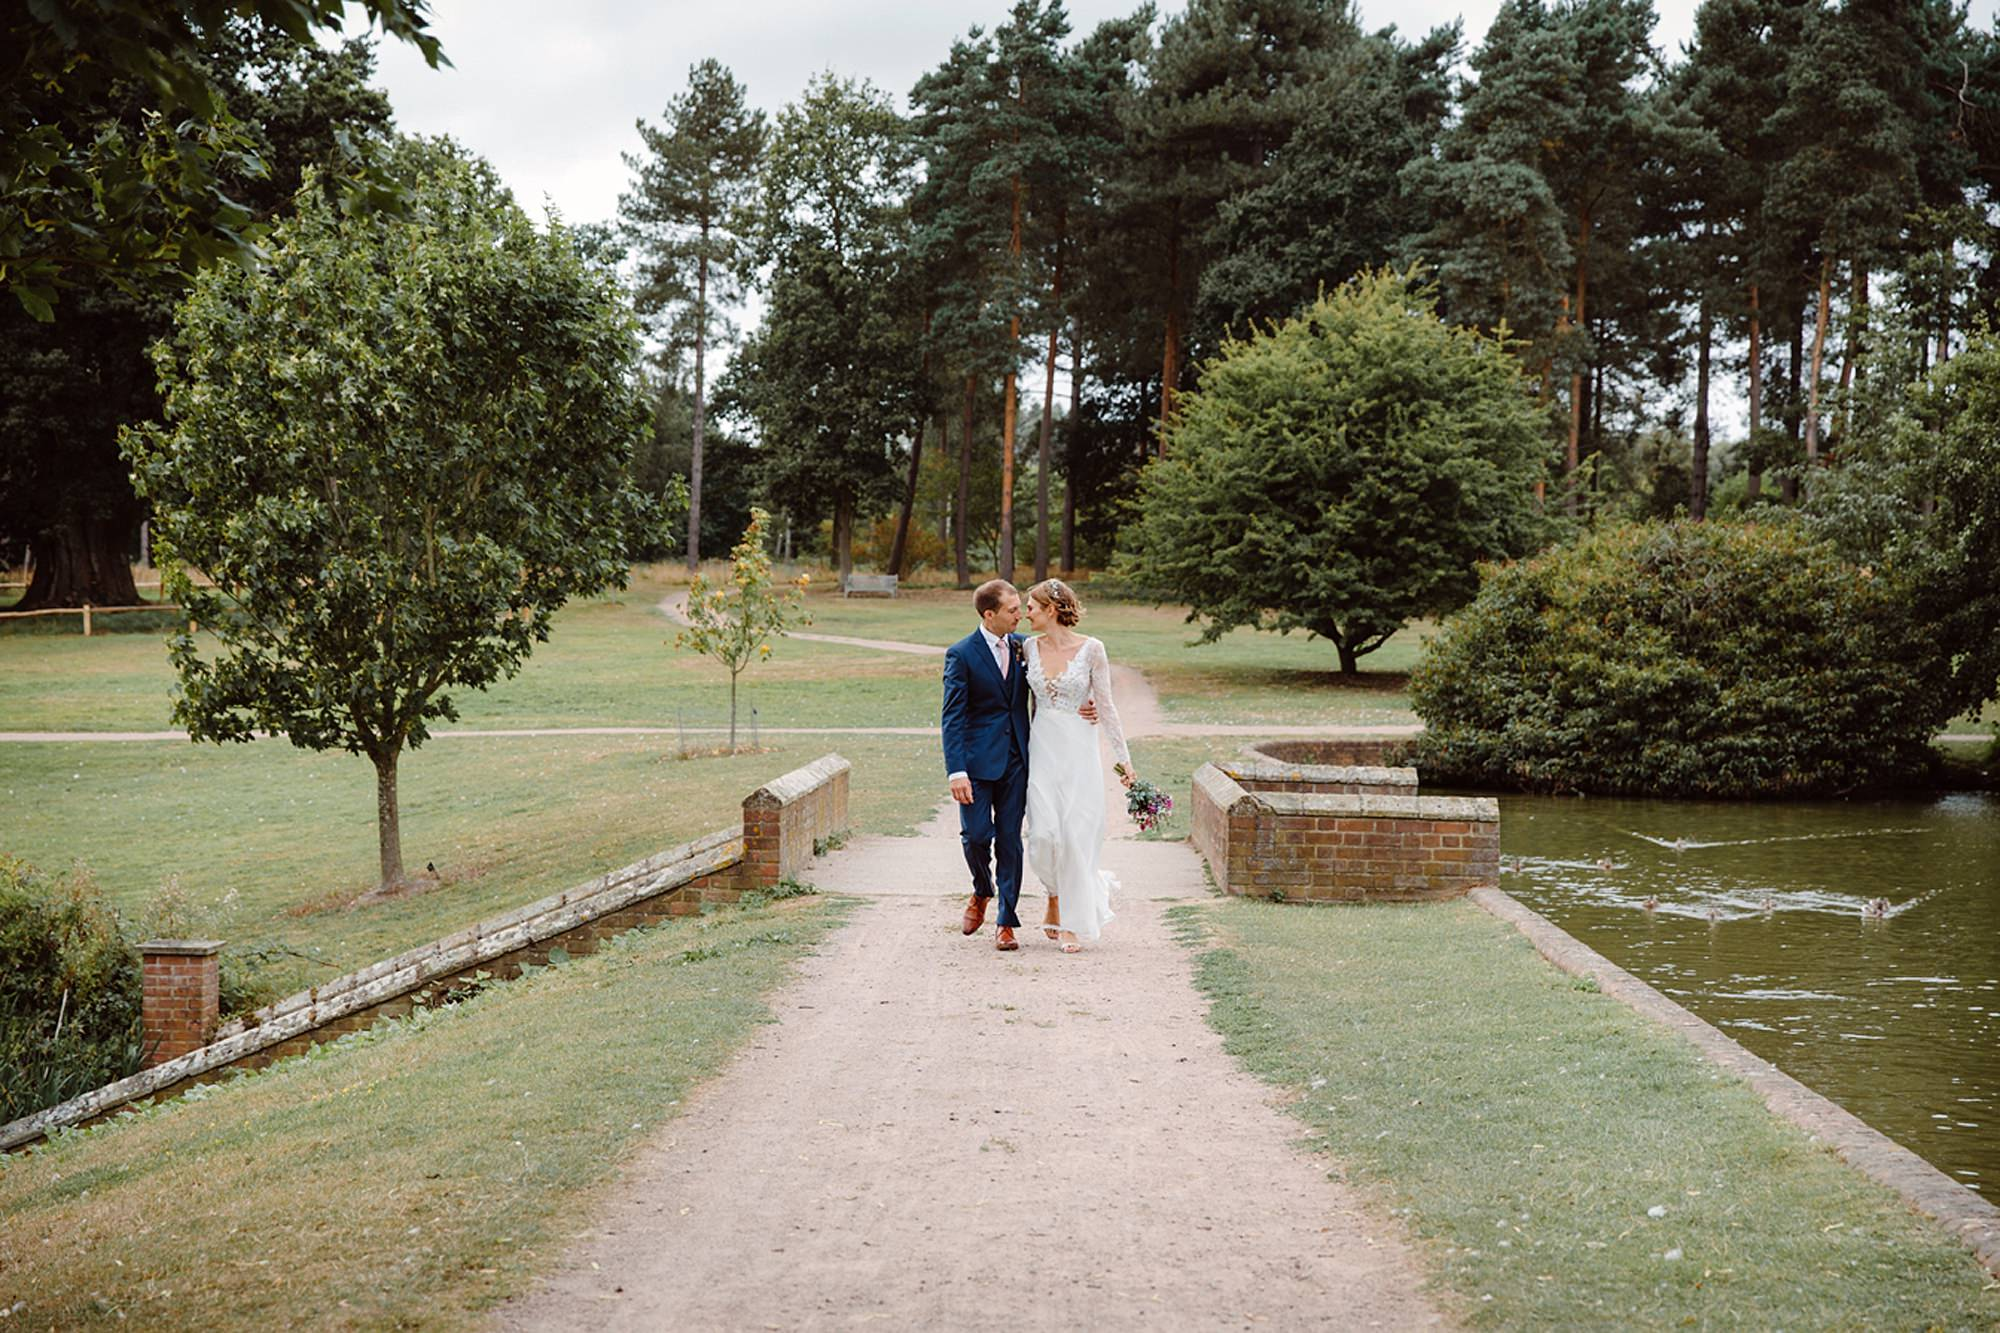 Marks Hall Estate wedding photography bride and groom walking and kissing